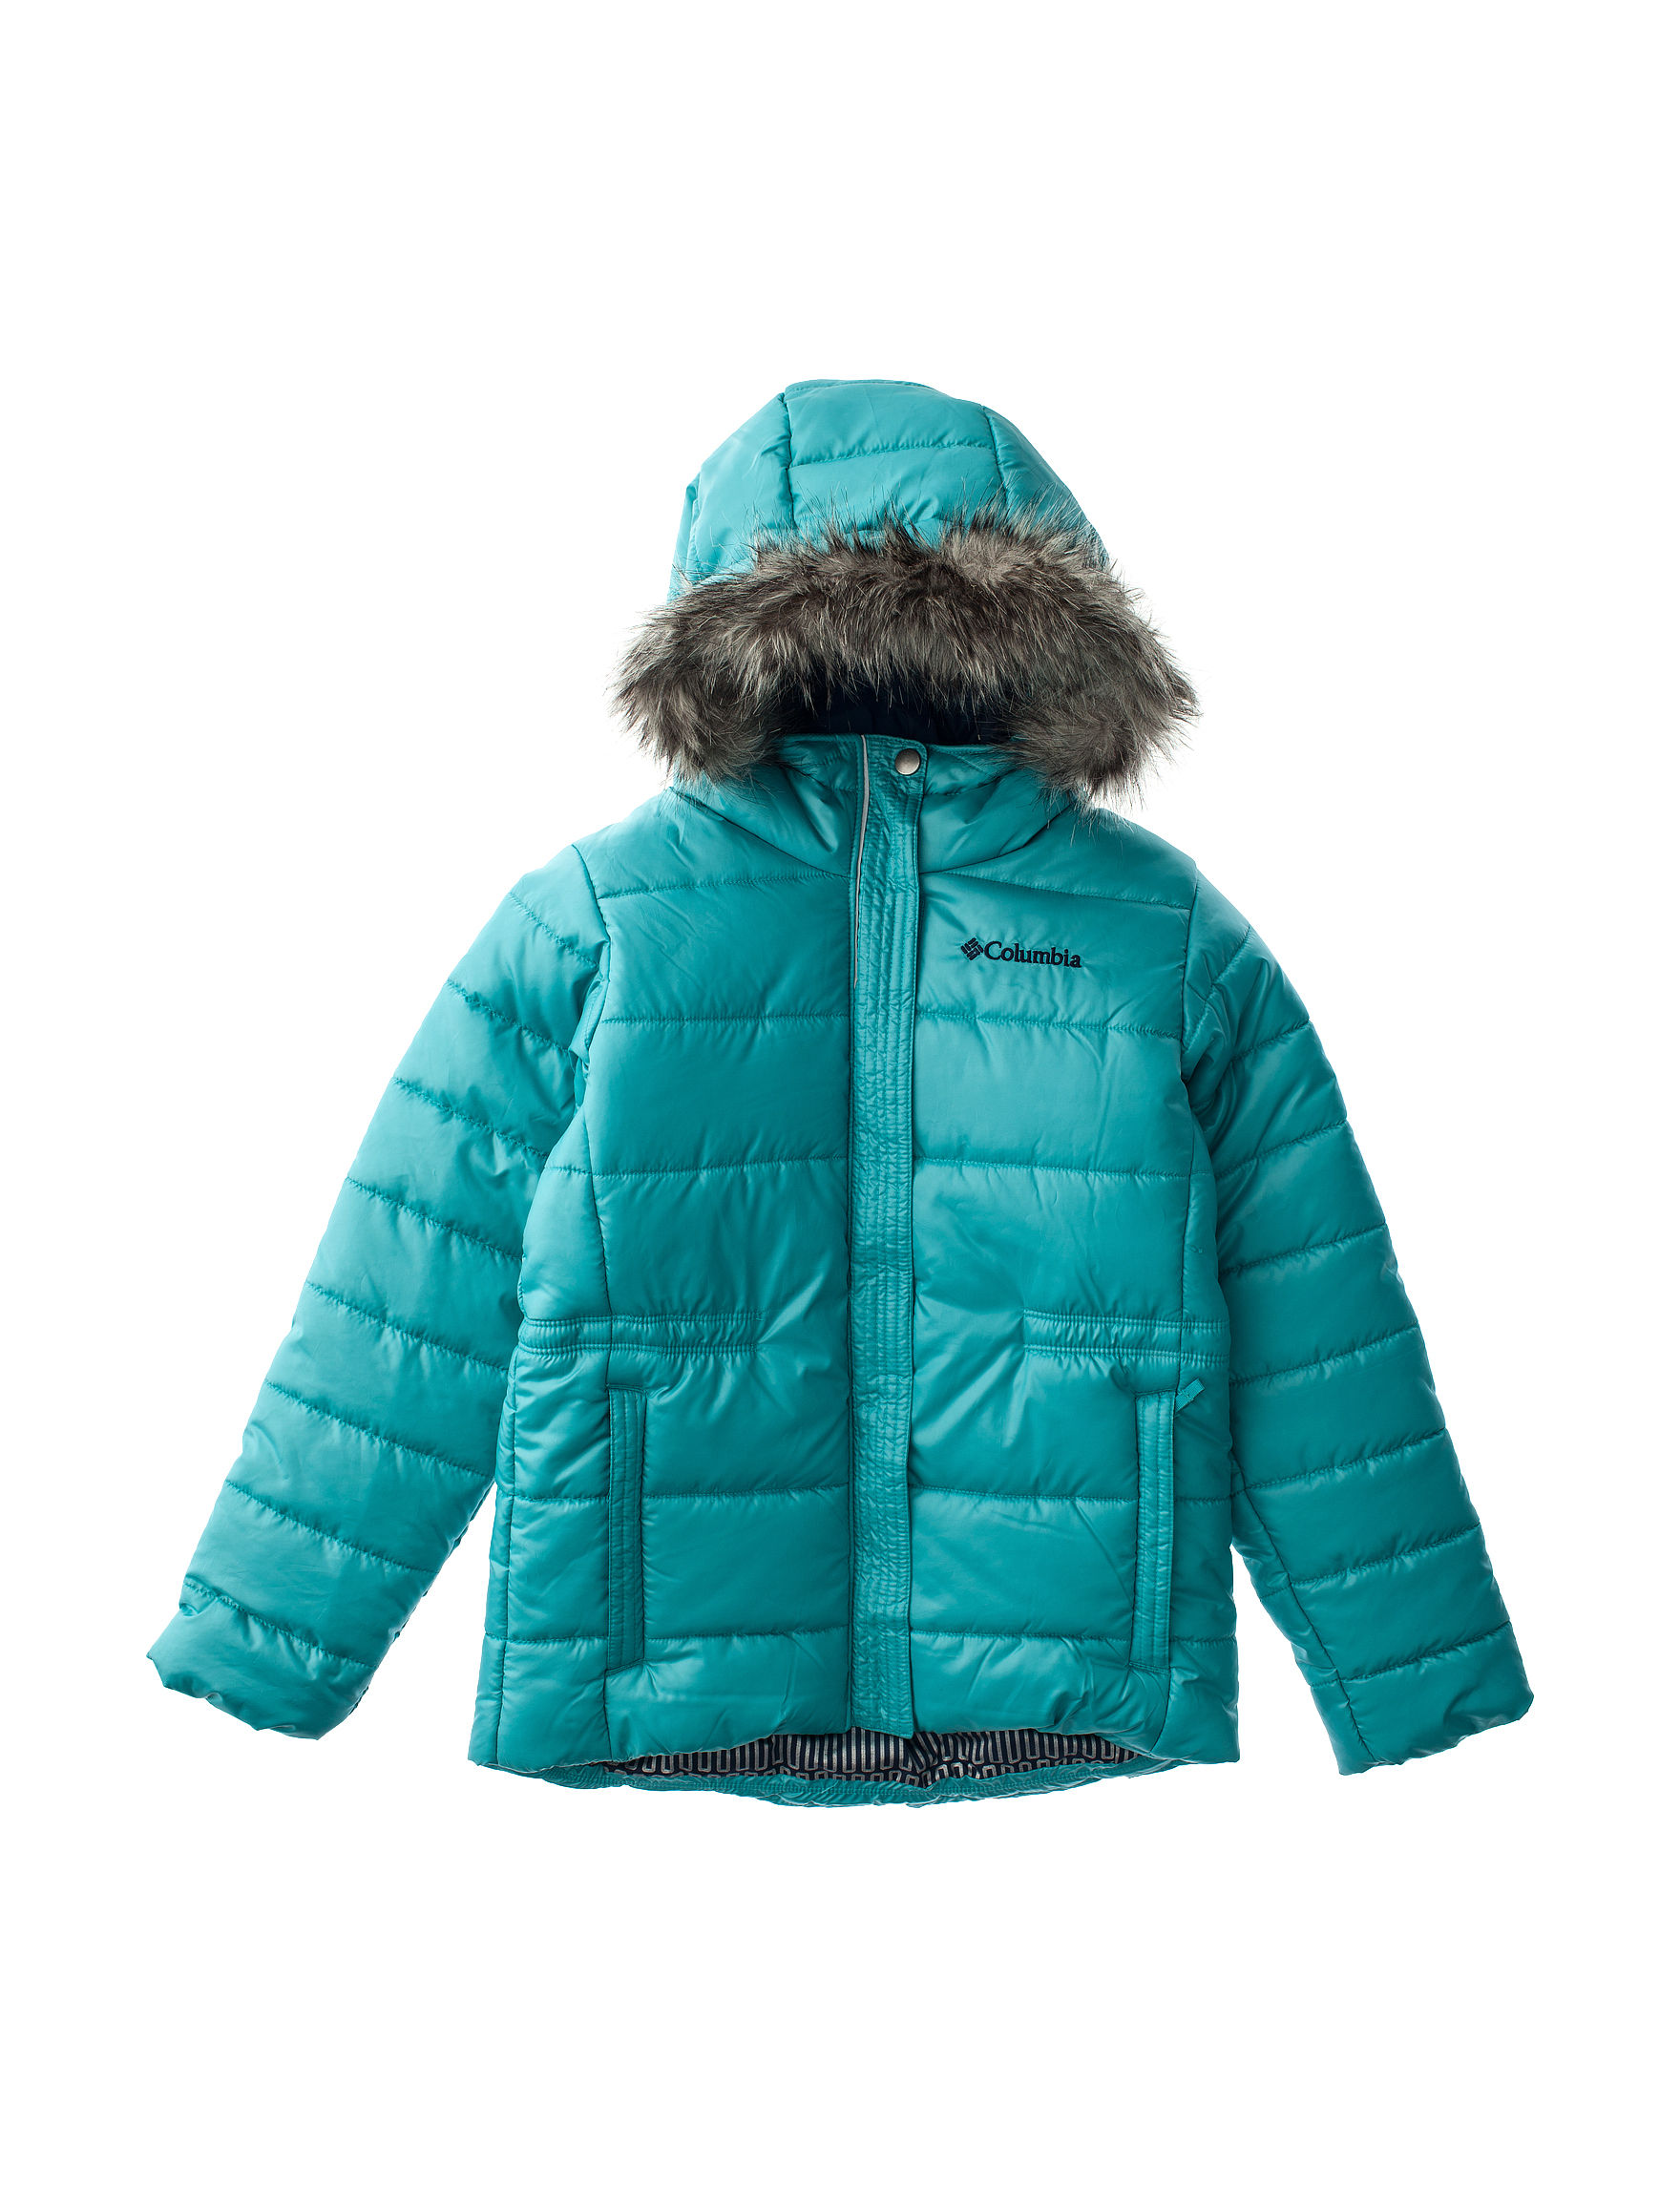 Columbia Blue Puffer & Quilted Jackets